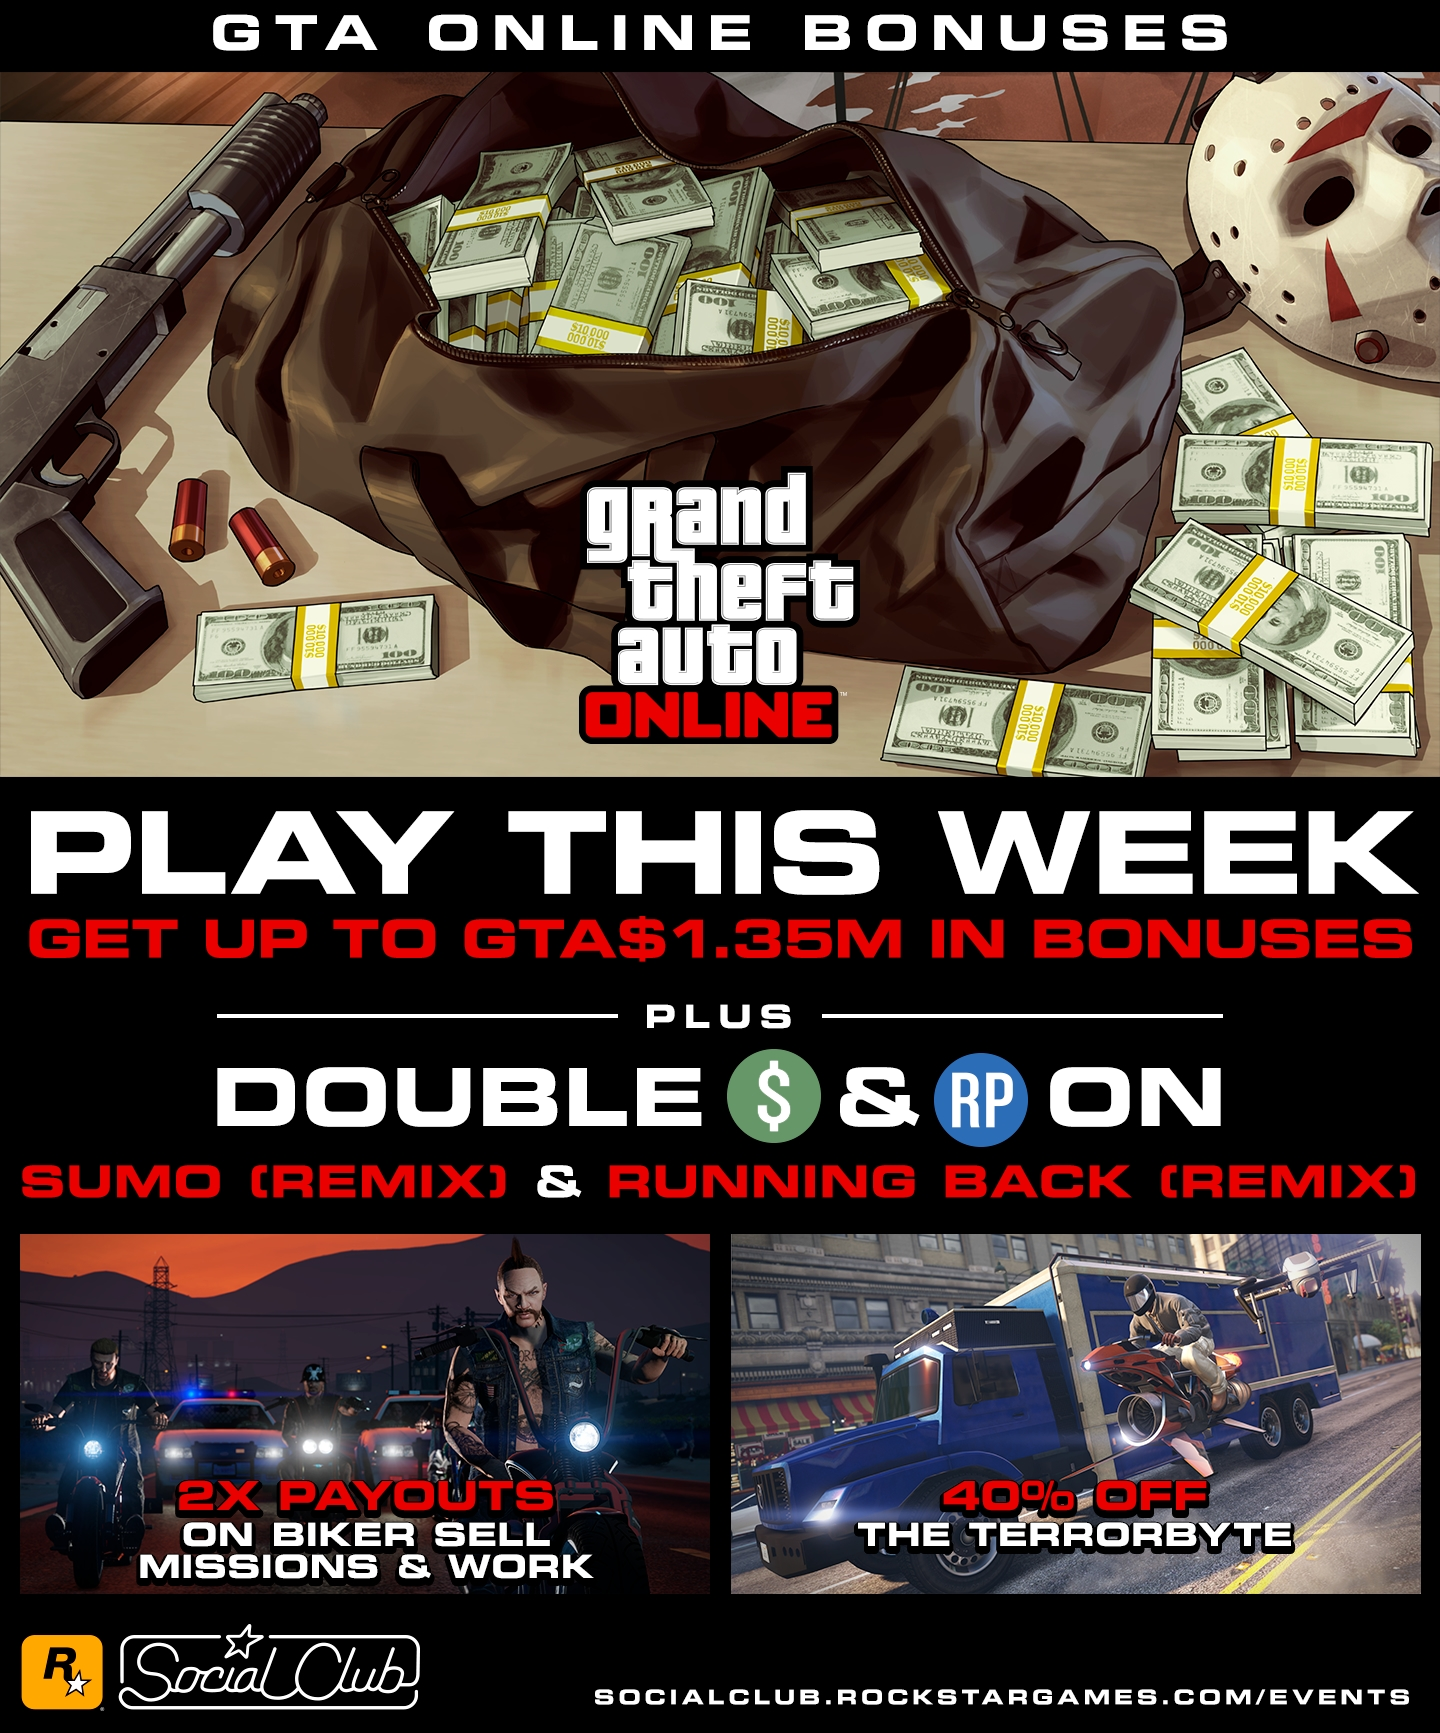 Get Up to GTA$1 35M in Bonuses This Week - Rockstar Games